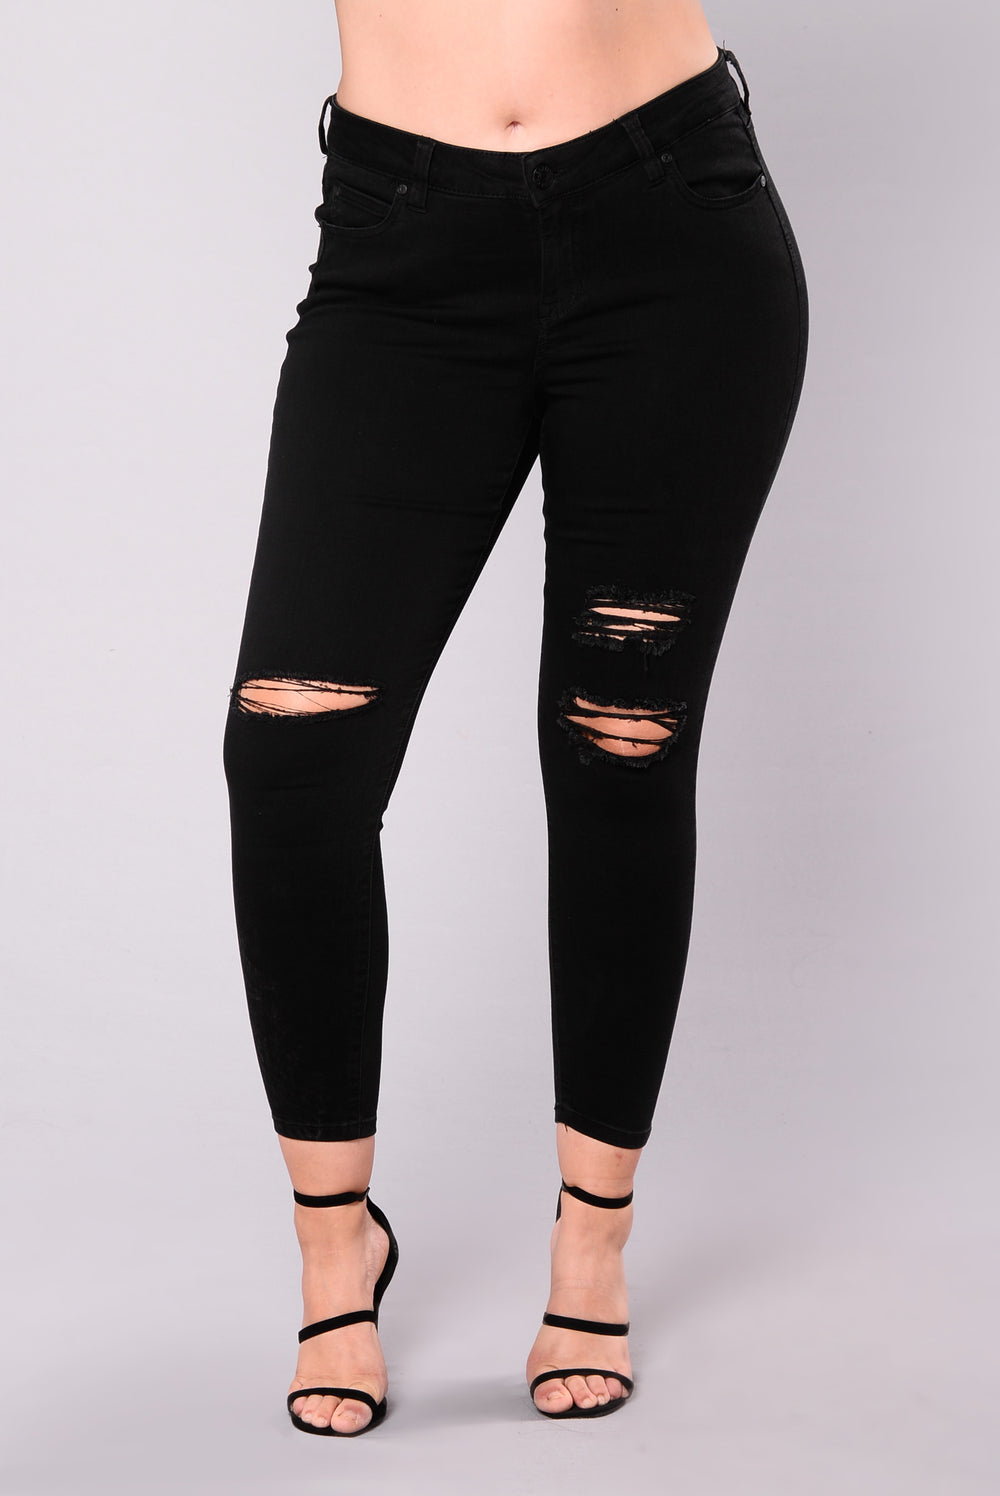 Don't Stop The Music Jeans - Black